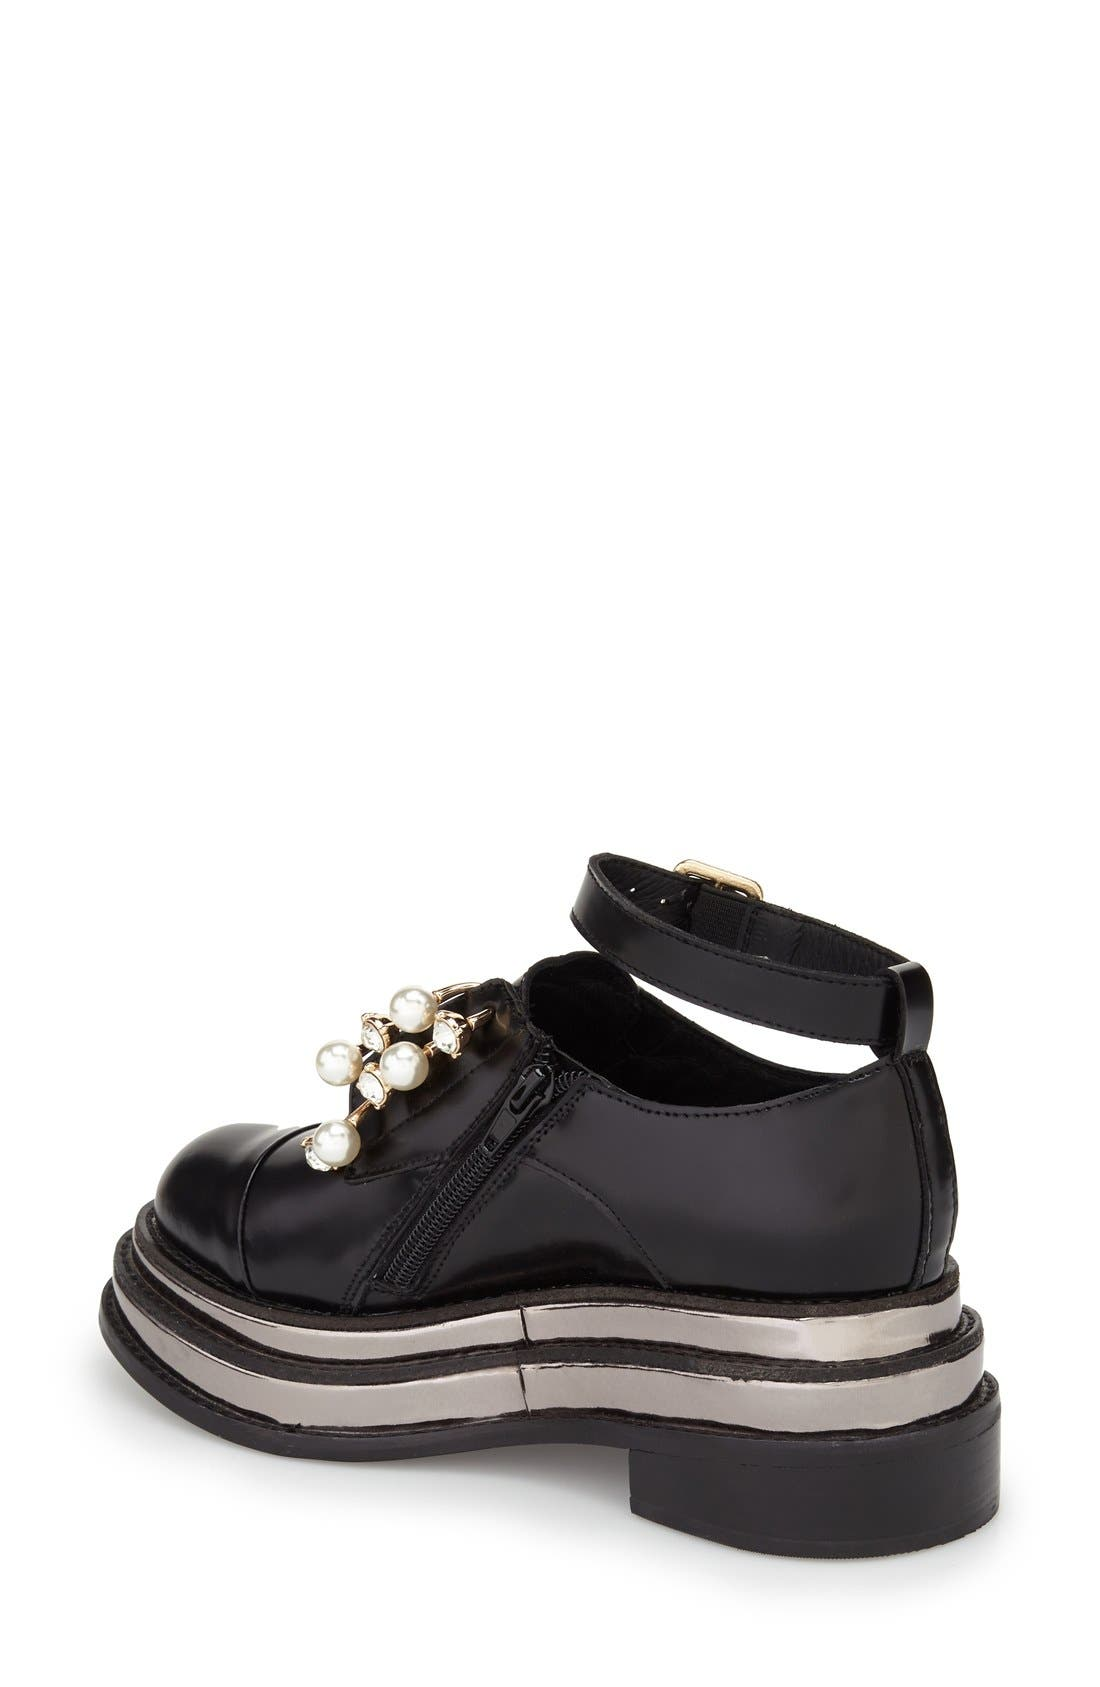 Alternate Image 2  - Jeffrey Campbell 'Jagged' Crystal Embellished No-Lace Platform Oxford (Women)